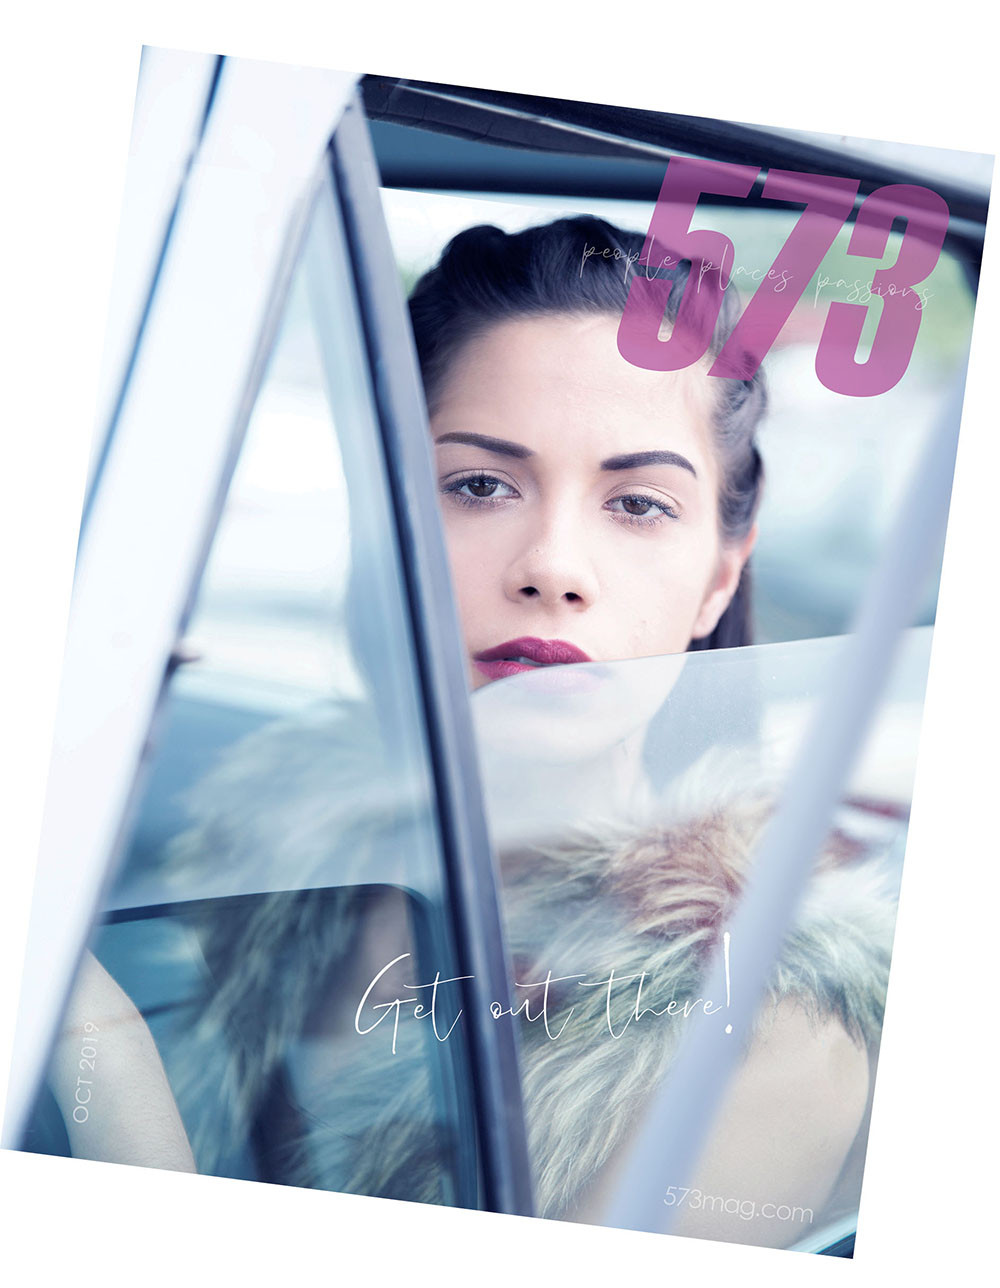 2019 573 magazine cover depicting young brunette woman in classic truck staring out the window